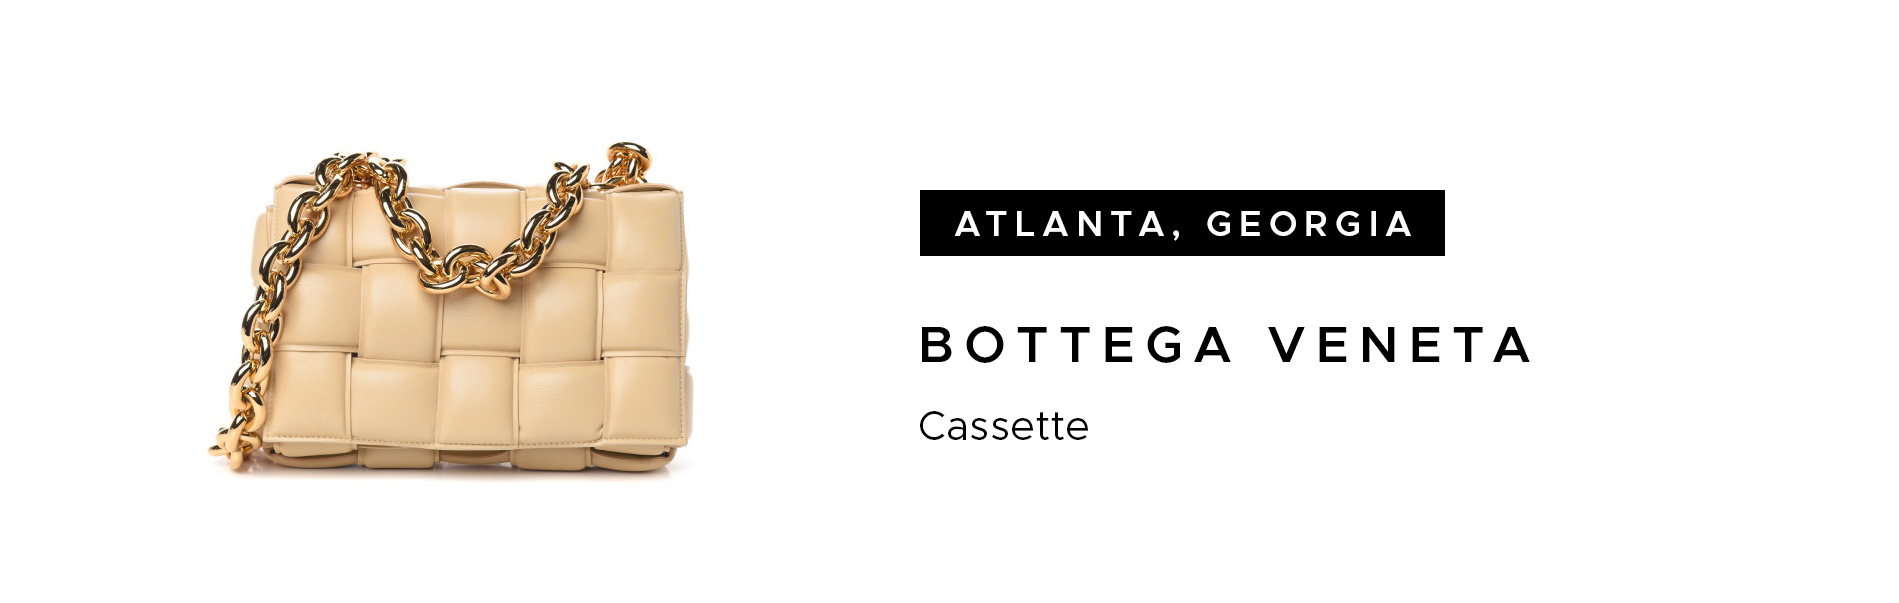 Atlanta, Georgia Bottega Veneta